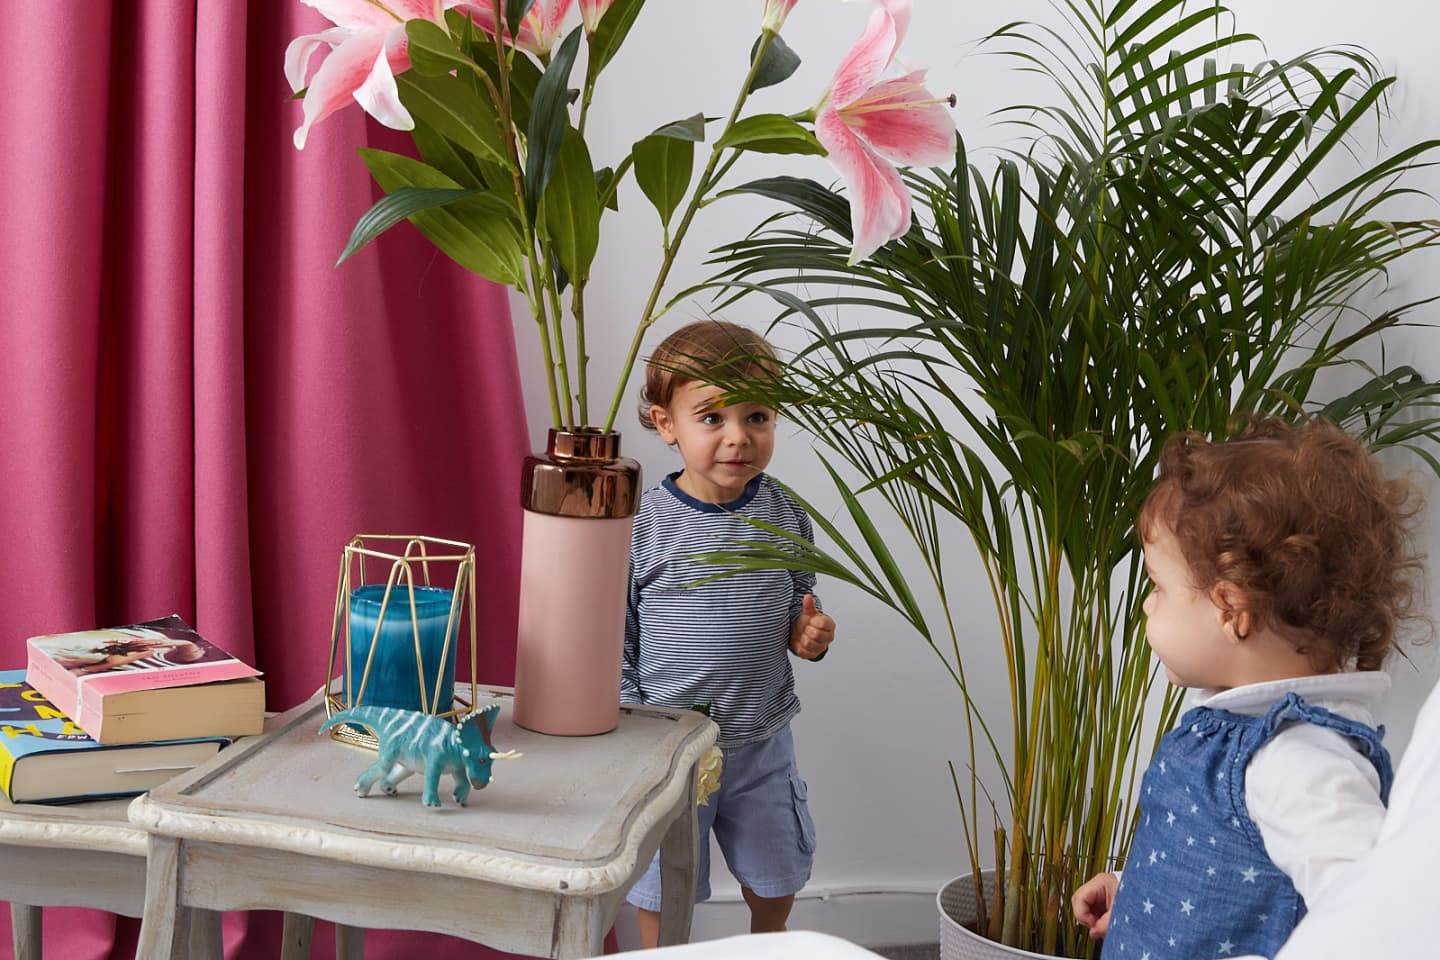 kids playing near plants and pink wool curtains